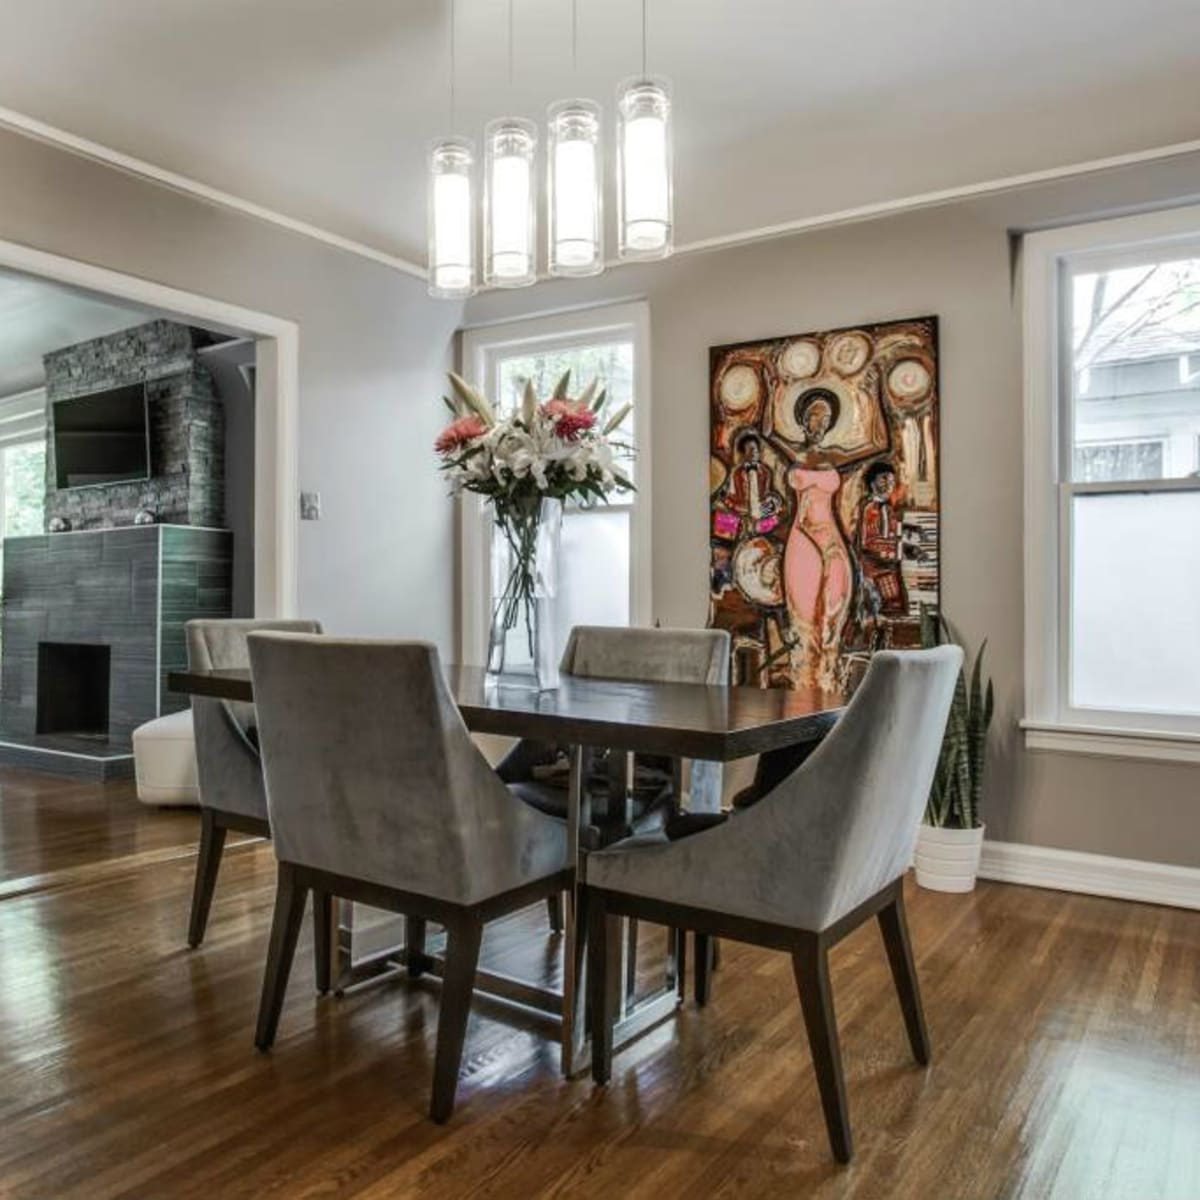 Dining room at 114 N. Edgefield in Dallas